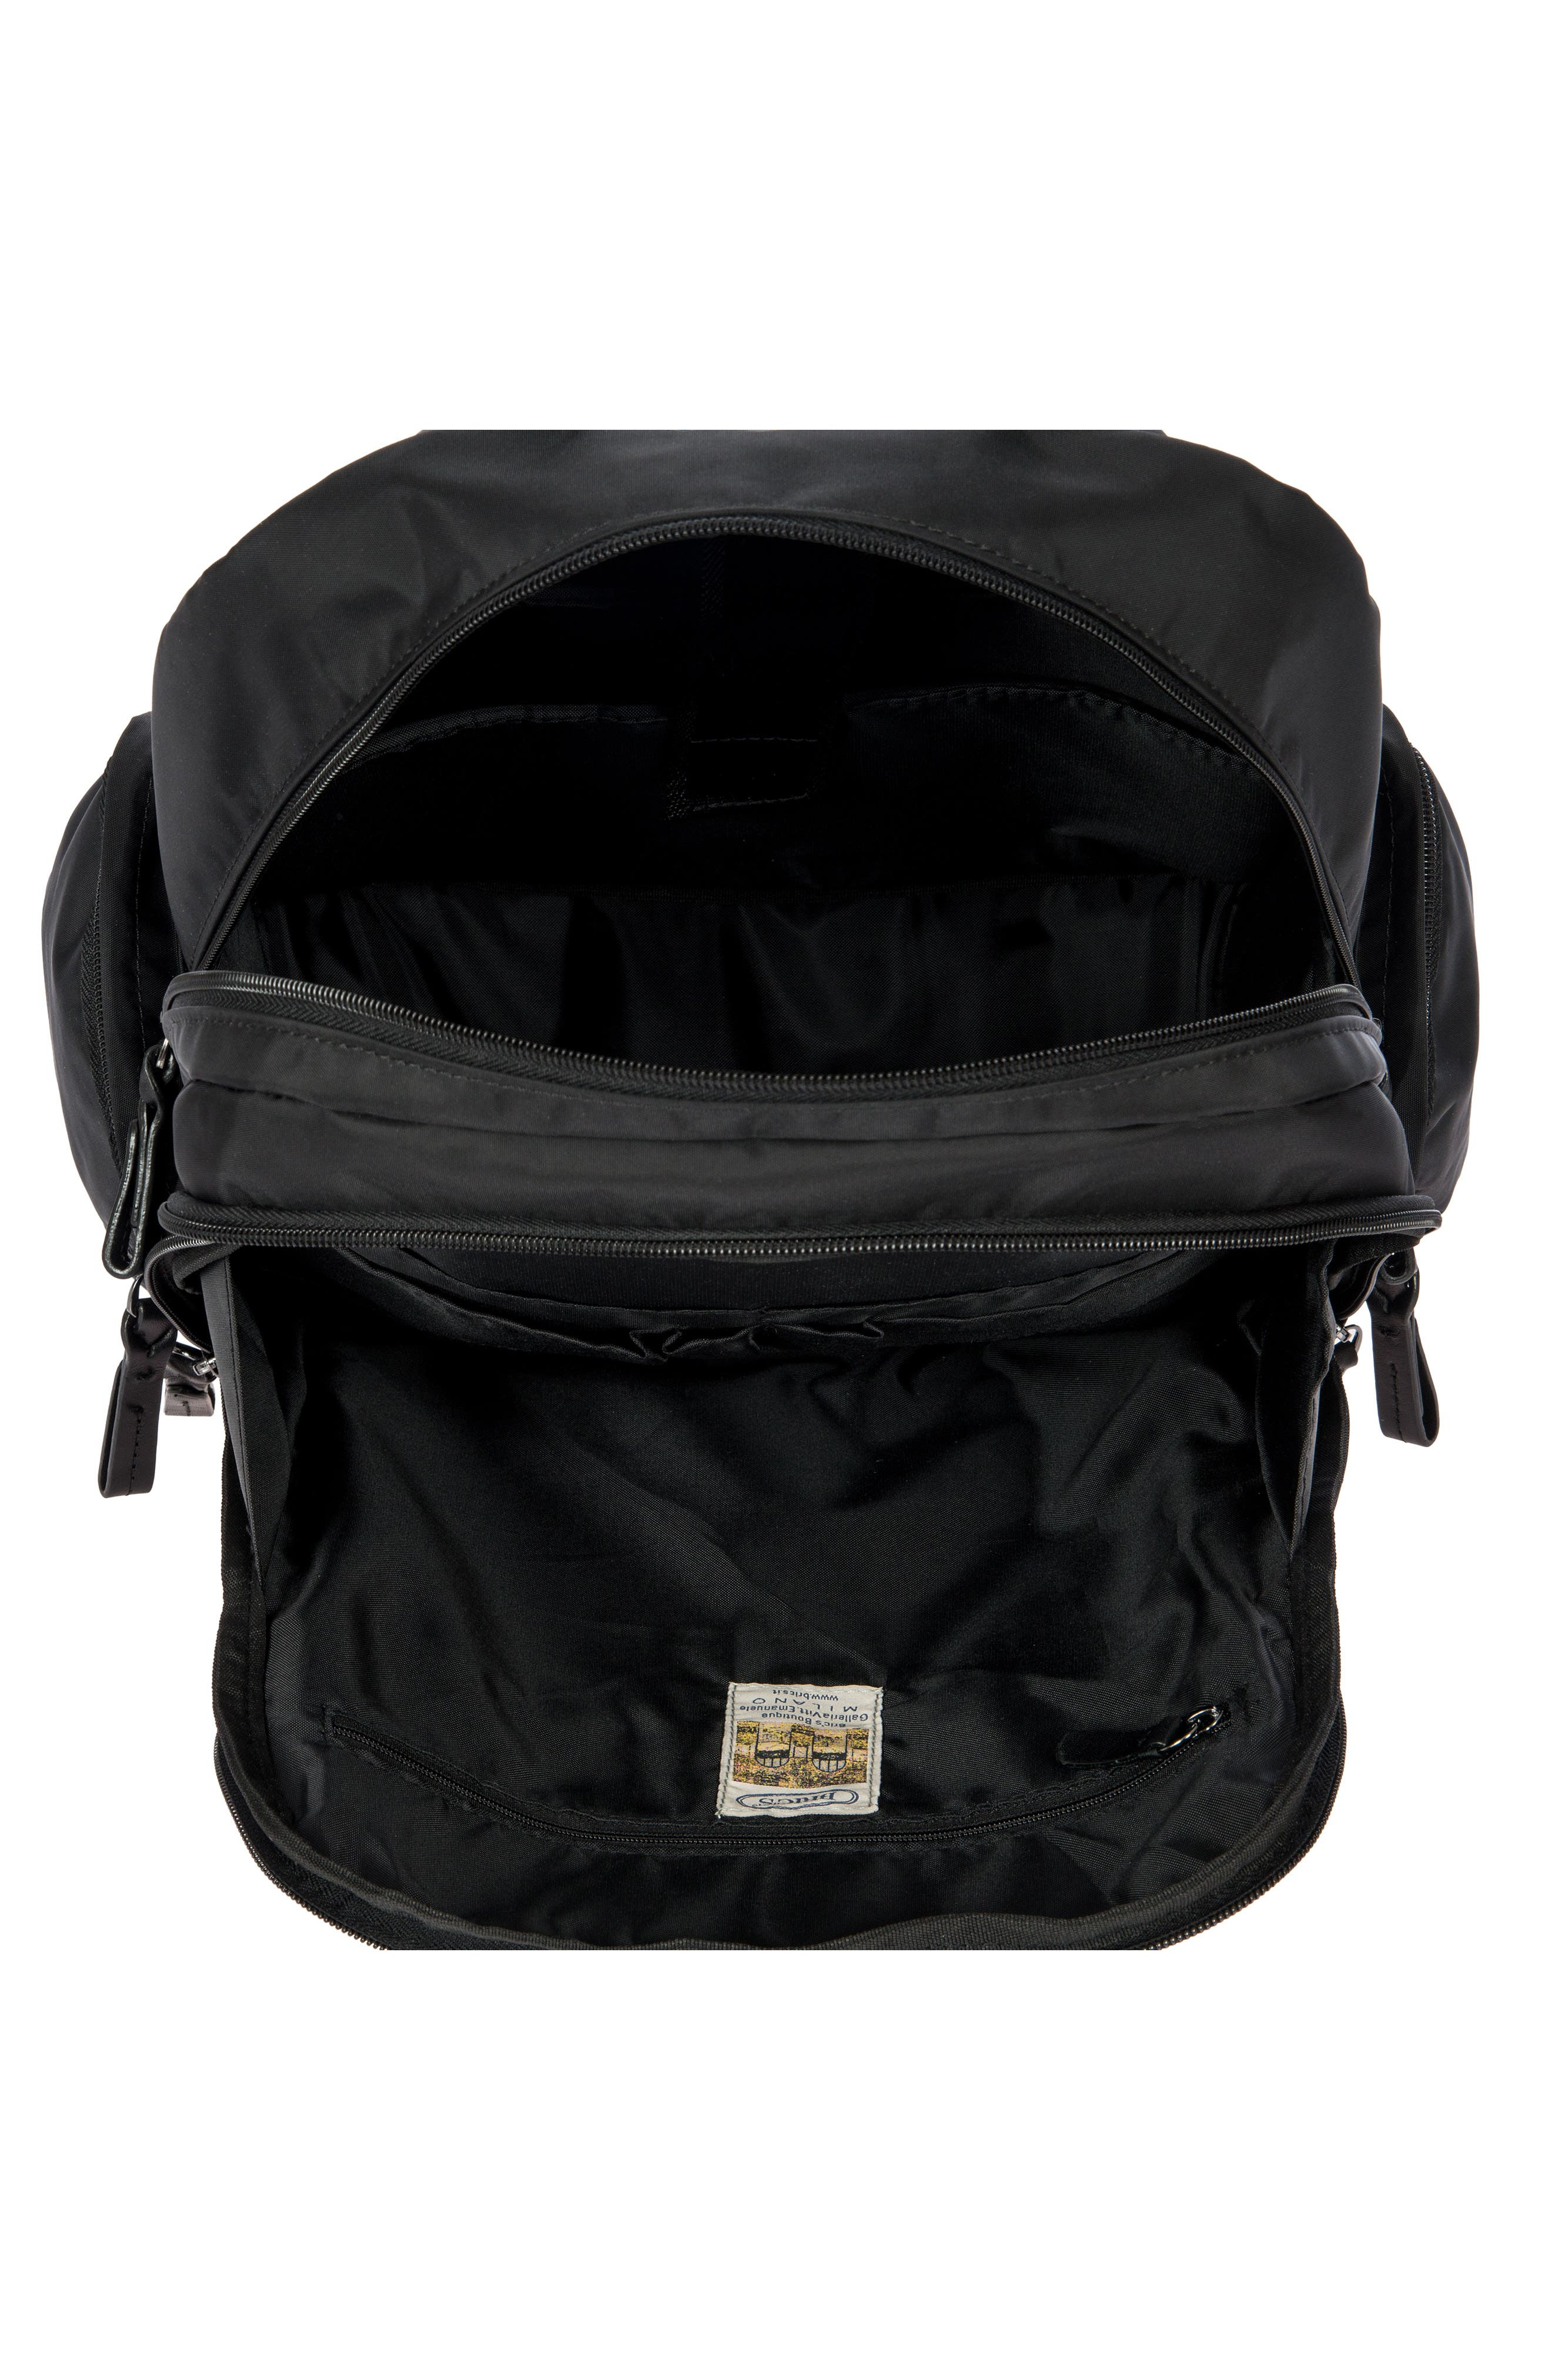 X-Travel Nomad Backpack,                             Alternate thumbnail 3, color,                             001